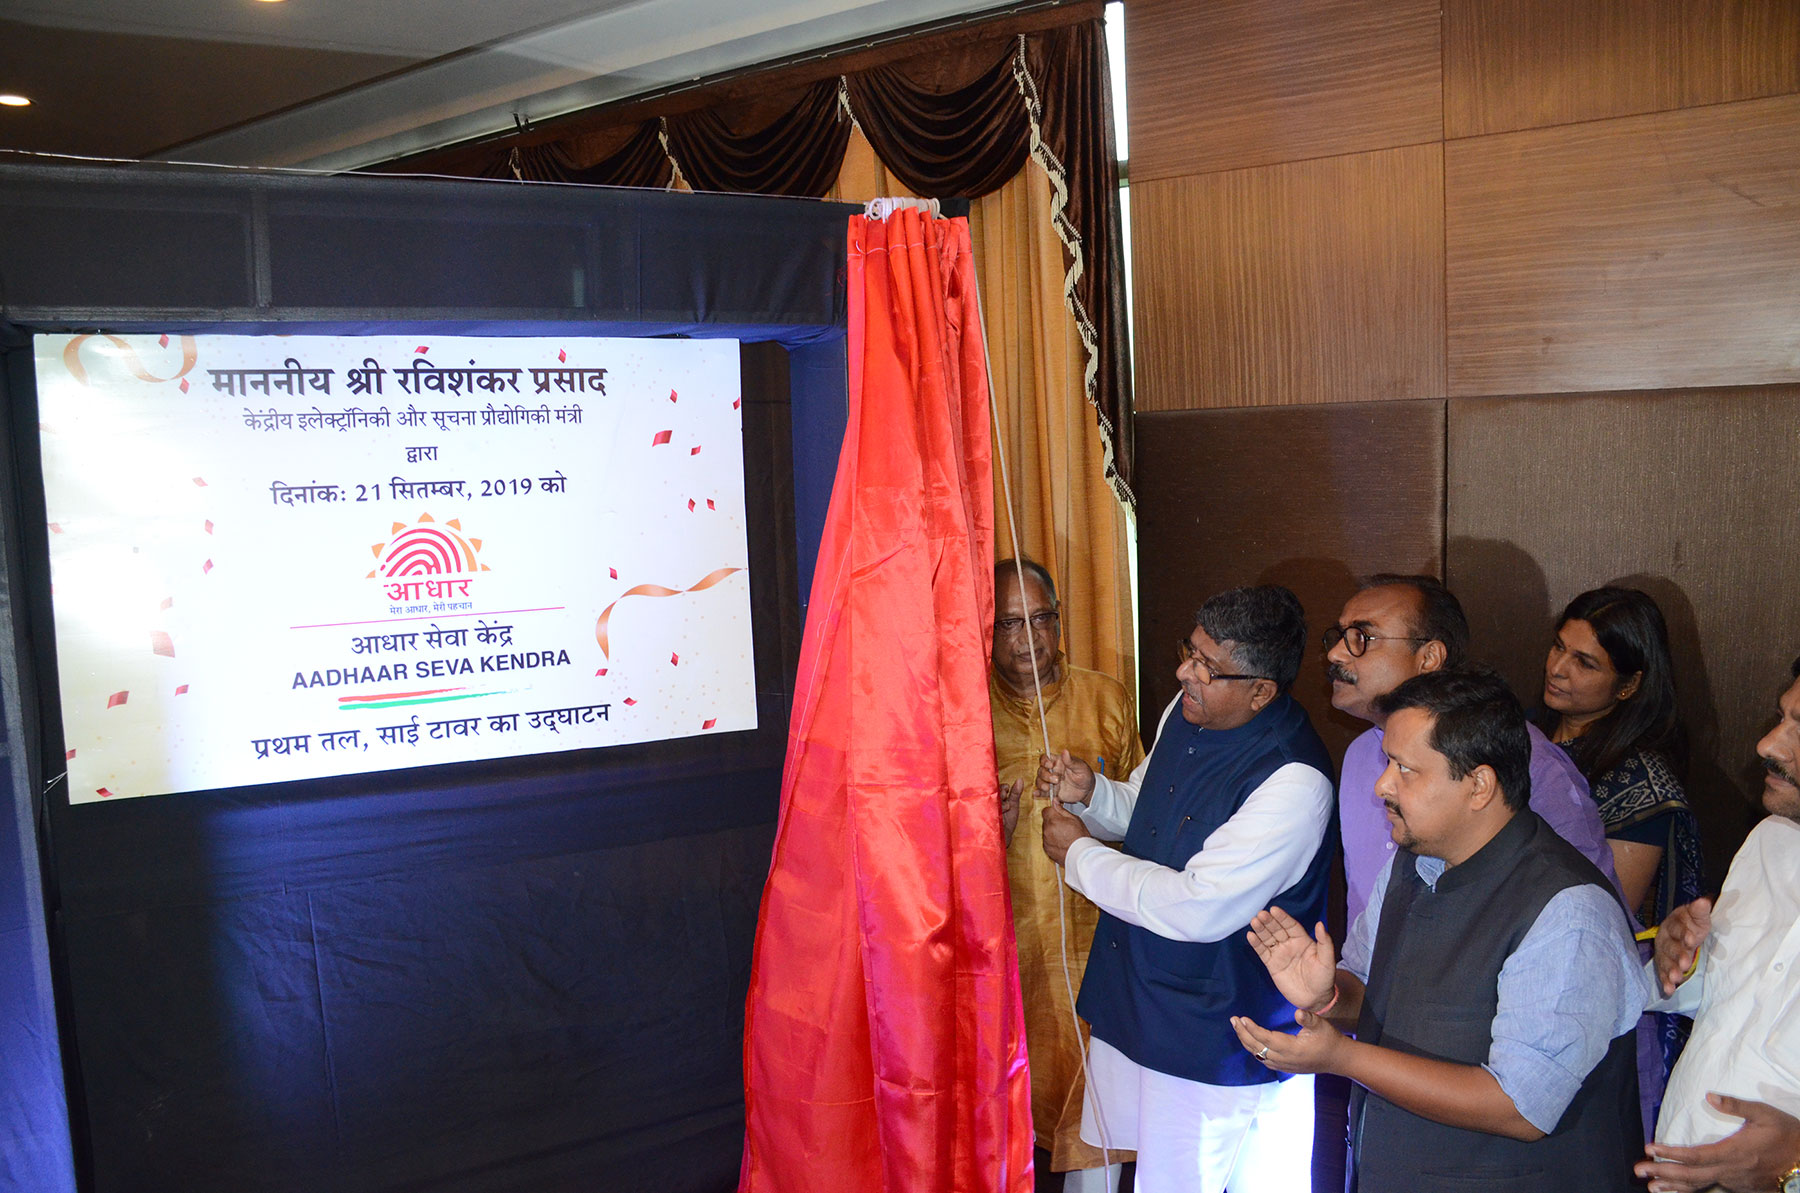 Union Minister of Electronics Information Technology unveils plaque for inaugurating Aadhaar SevaKendra_Patna